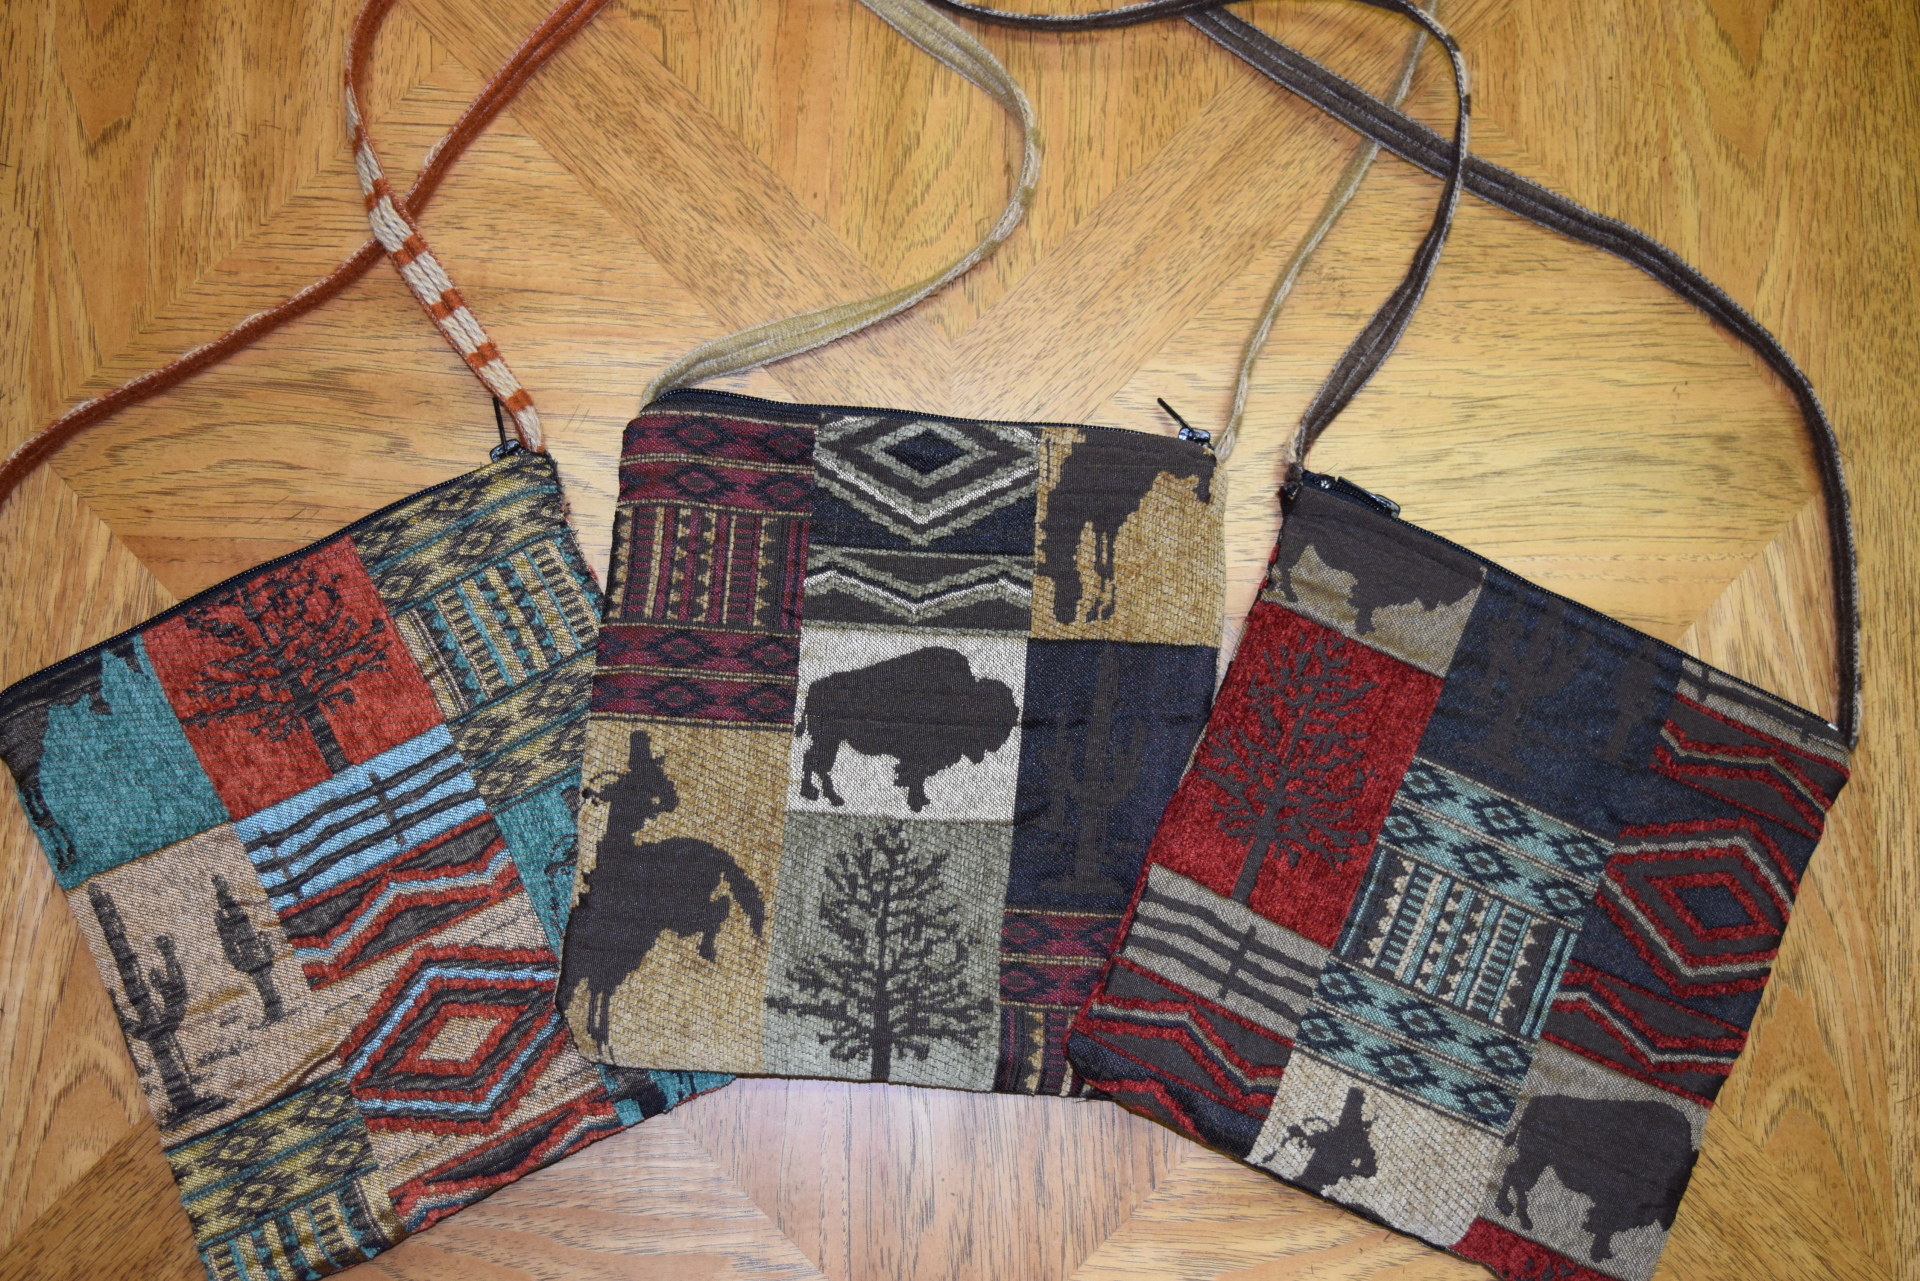 #B07 WILD WEST ZIP BAGS - RUST/AQUA - SAGE - RED/BROWN - $89.95